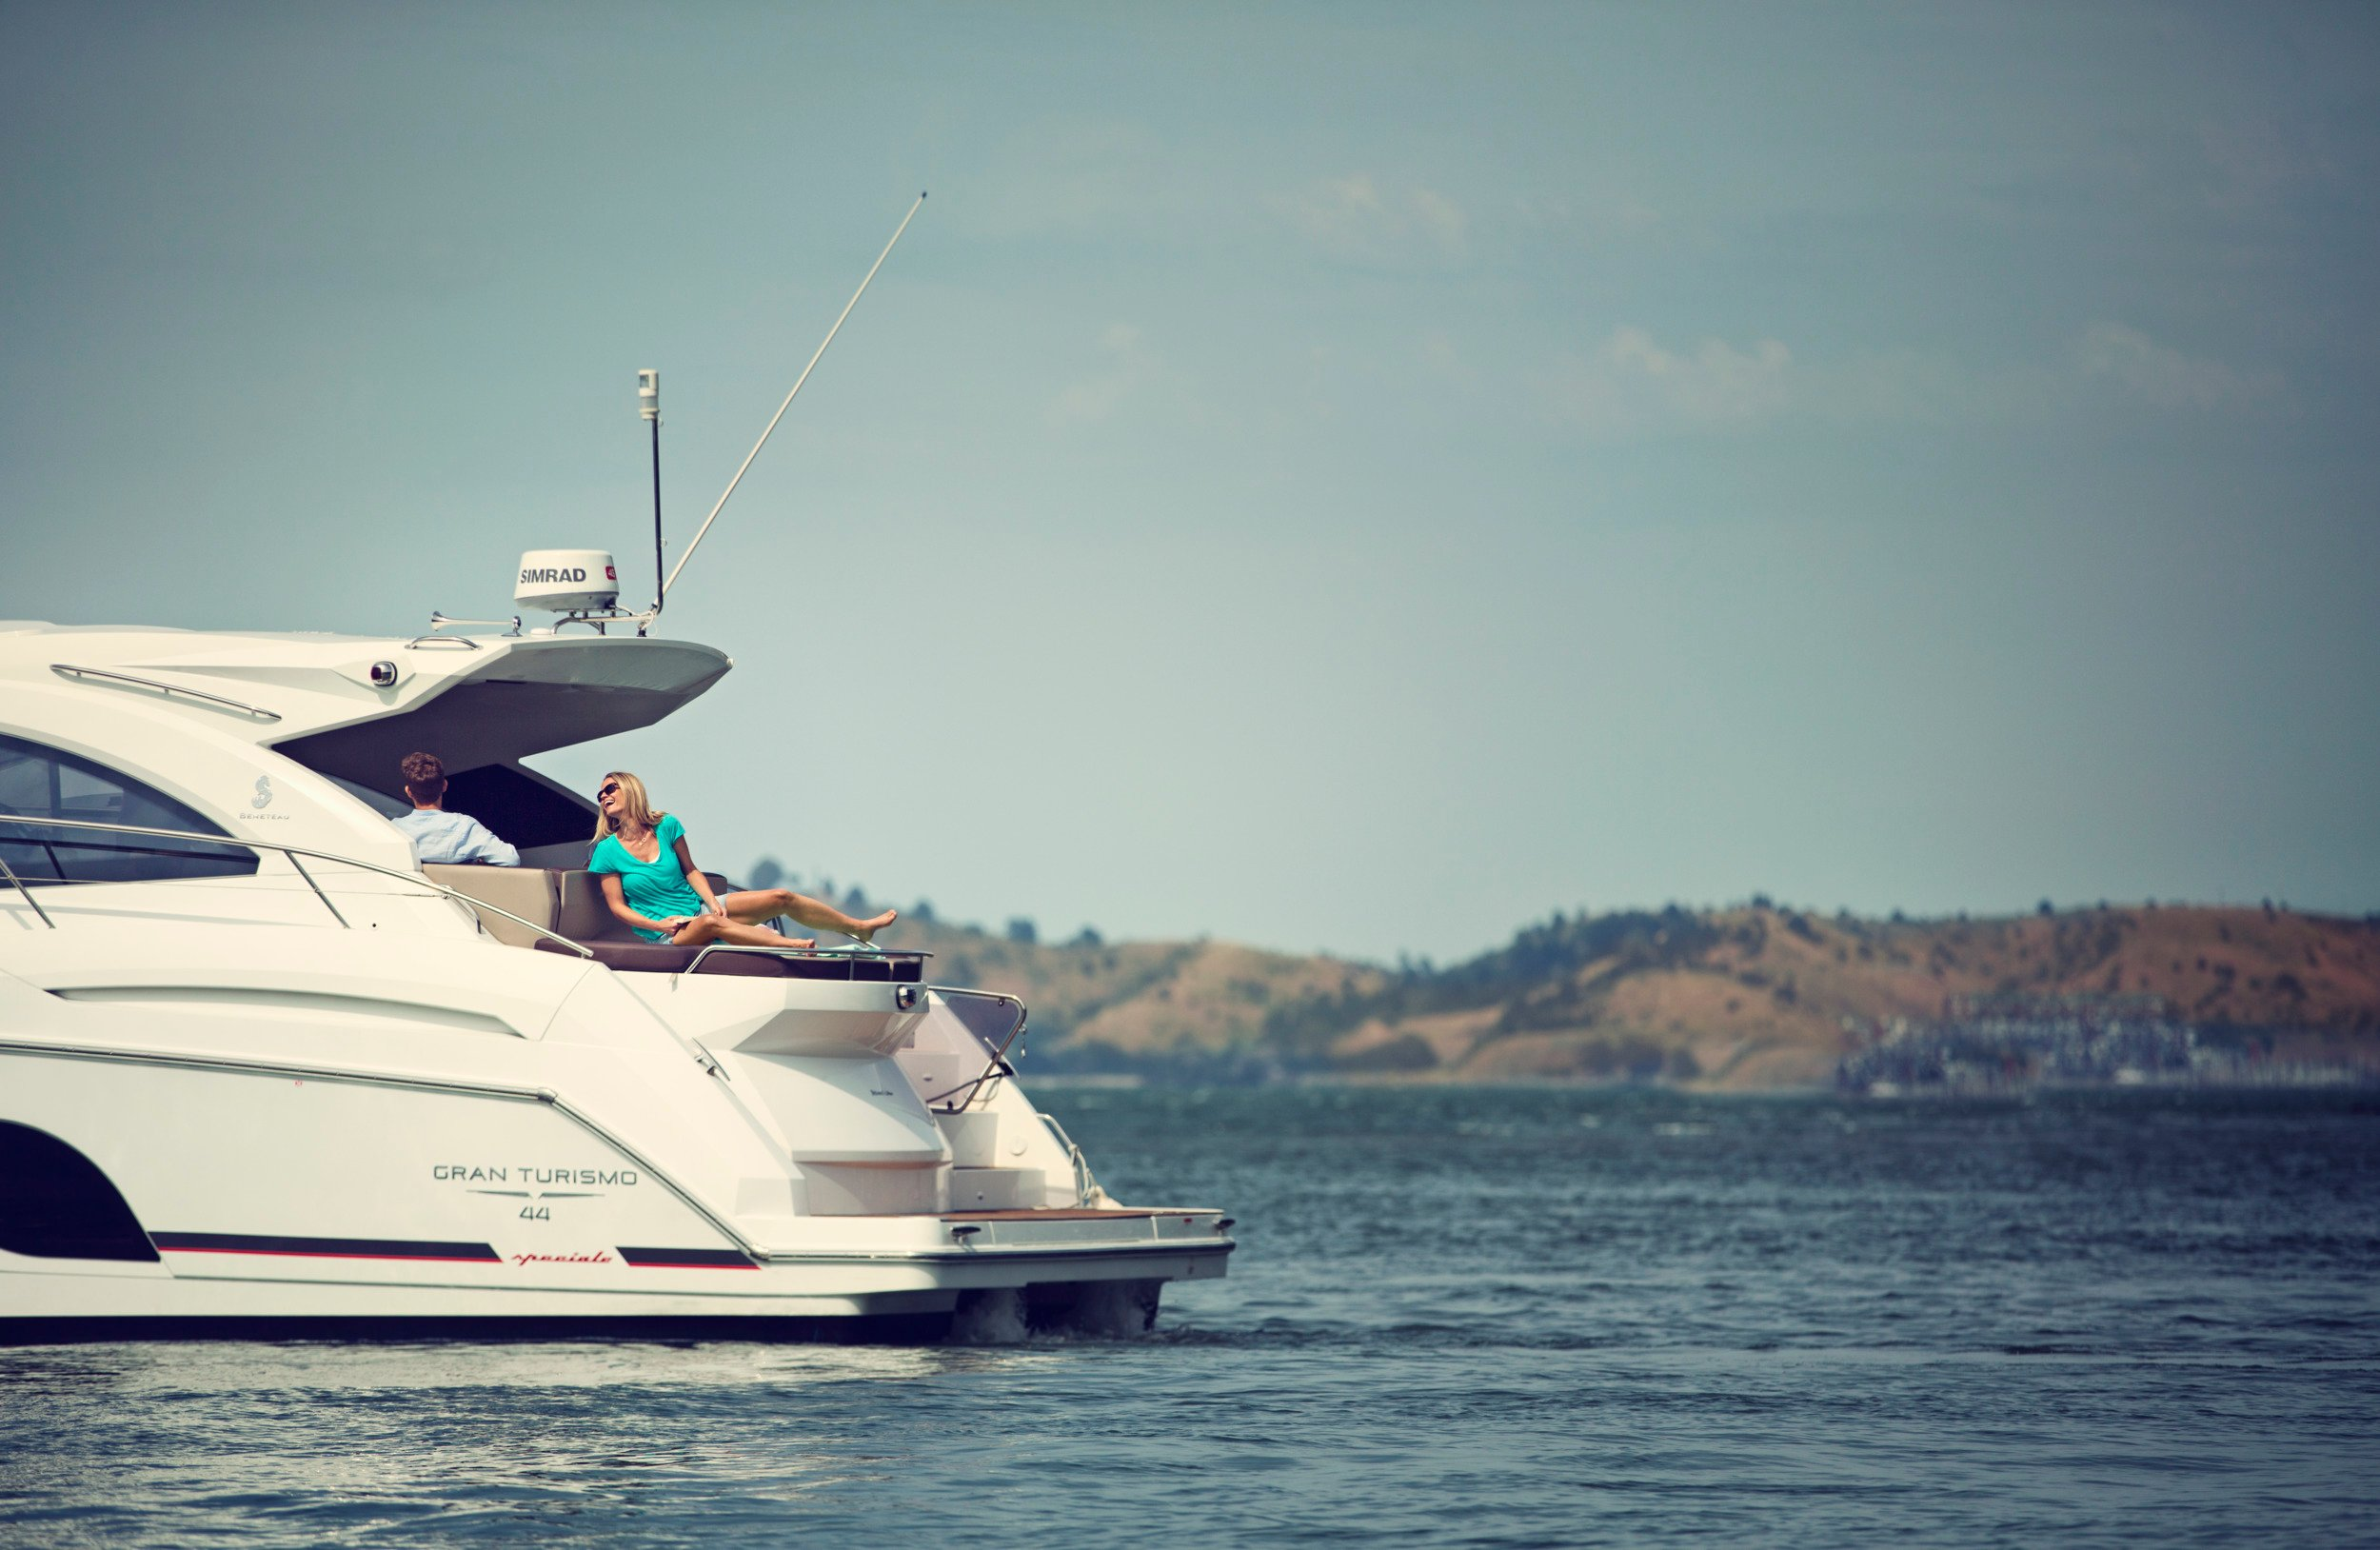 Dometic, marine, motorboat, ocean, lake, land, island, relax, sun, blue, sky, boat